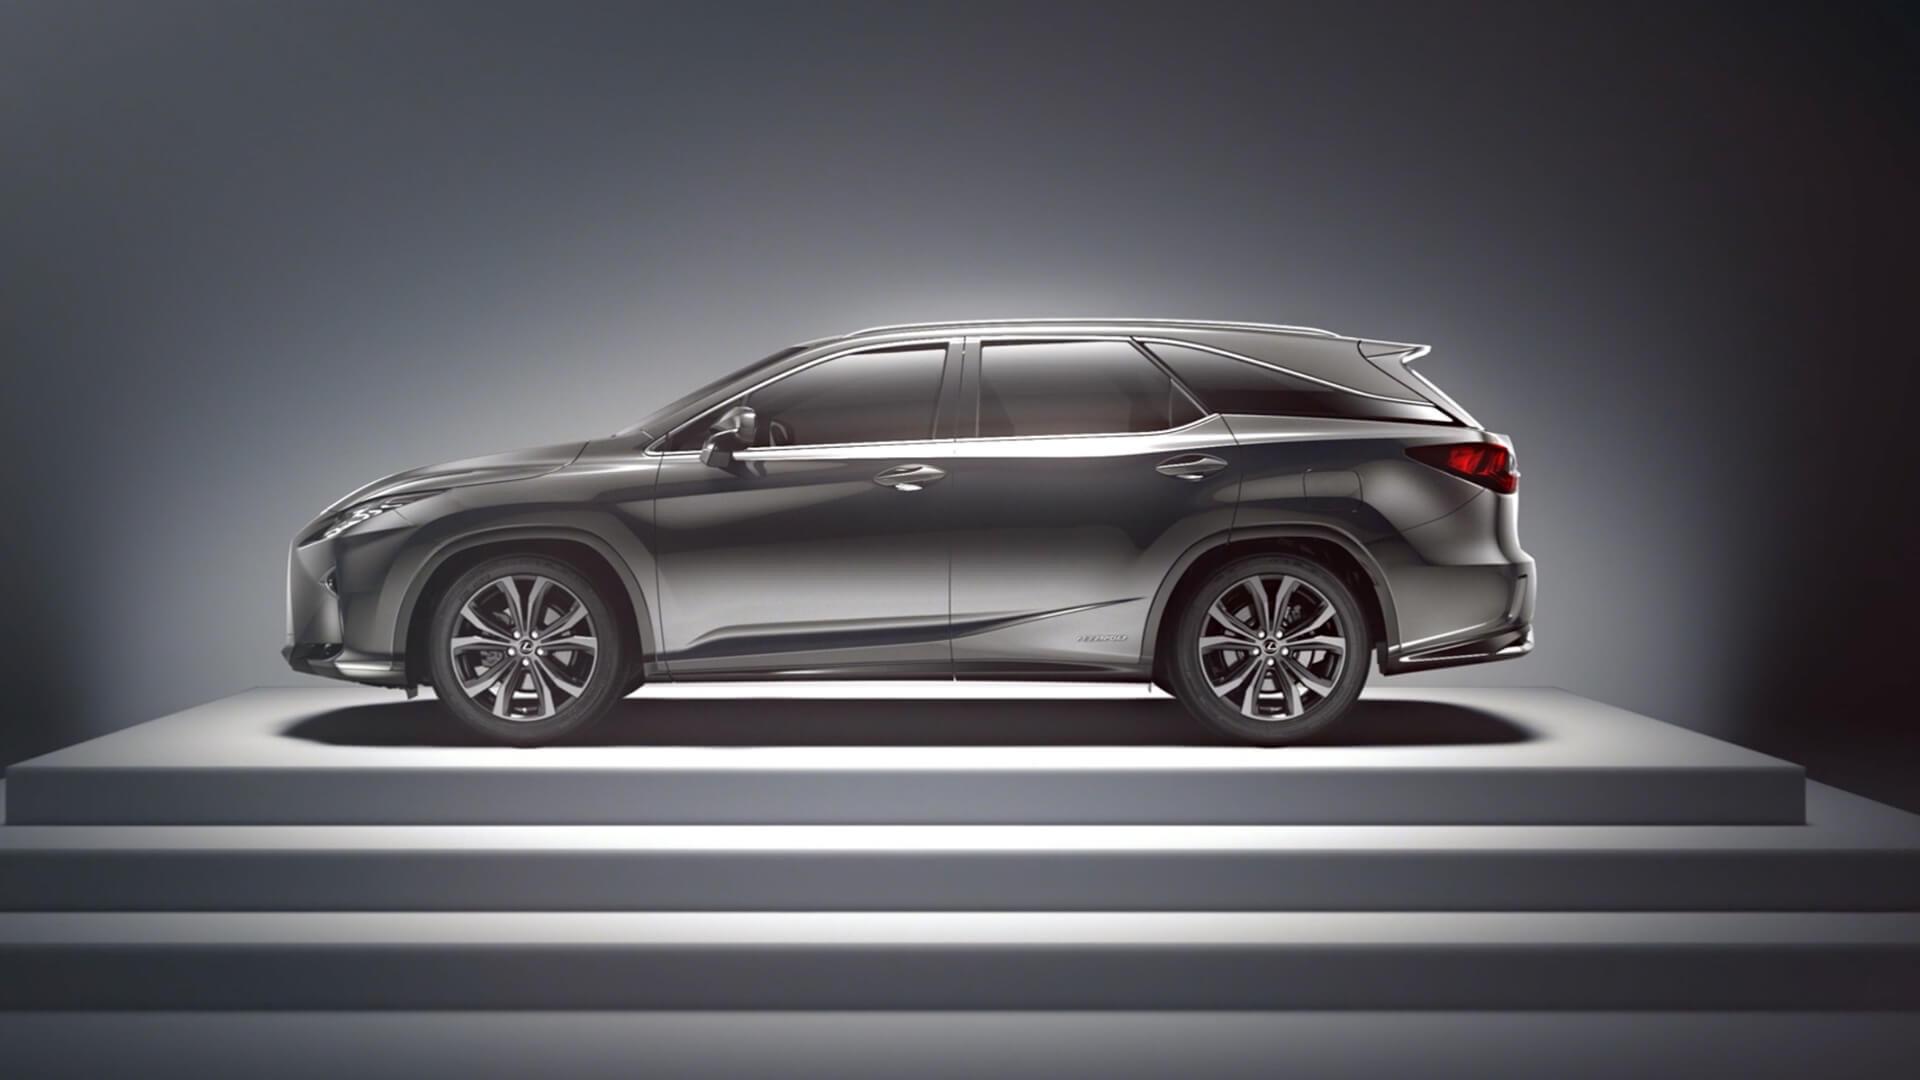 2018 lexus rx l features longer body line